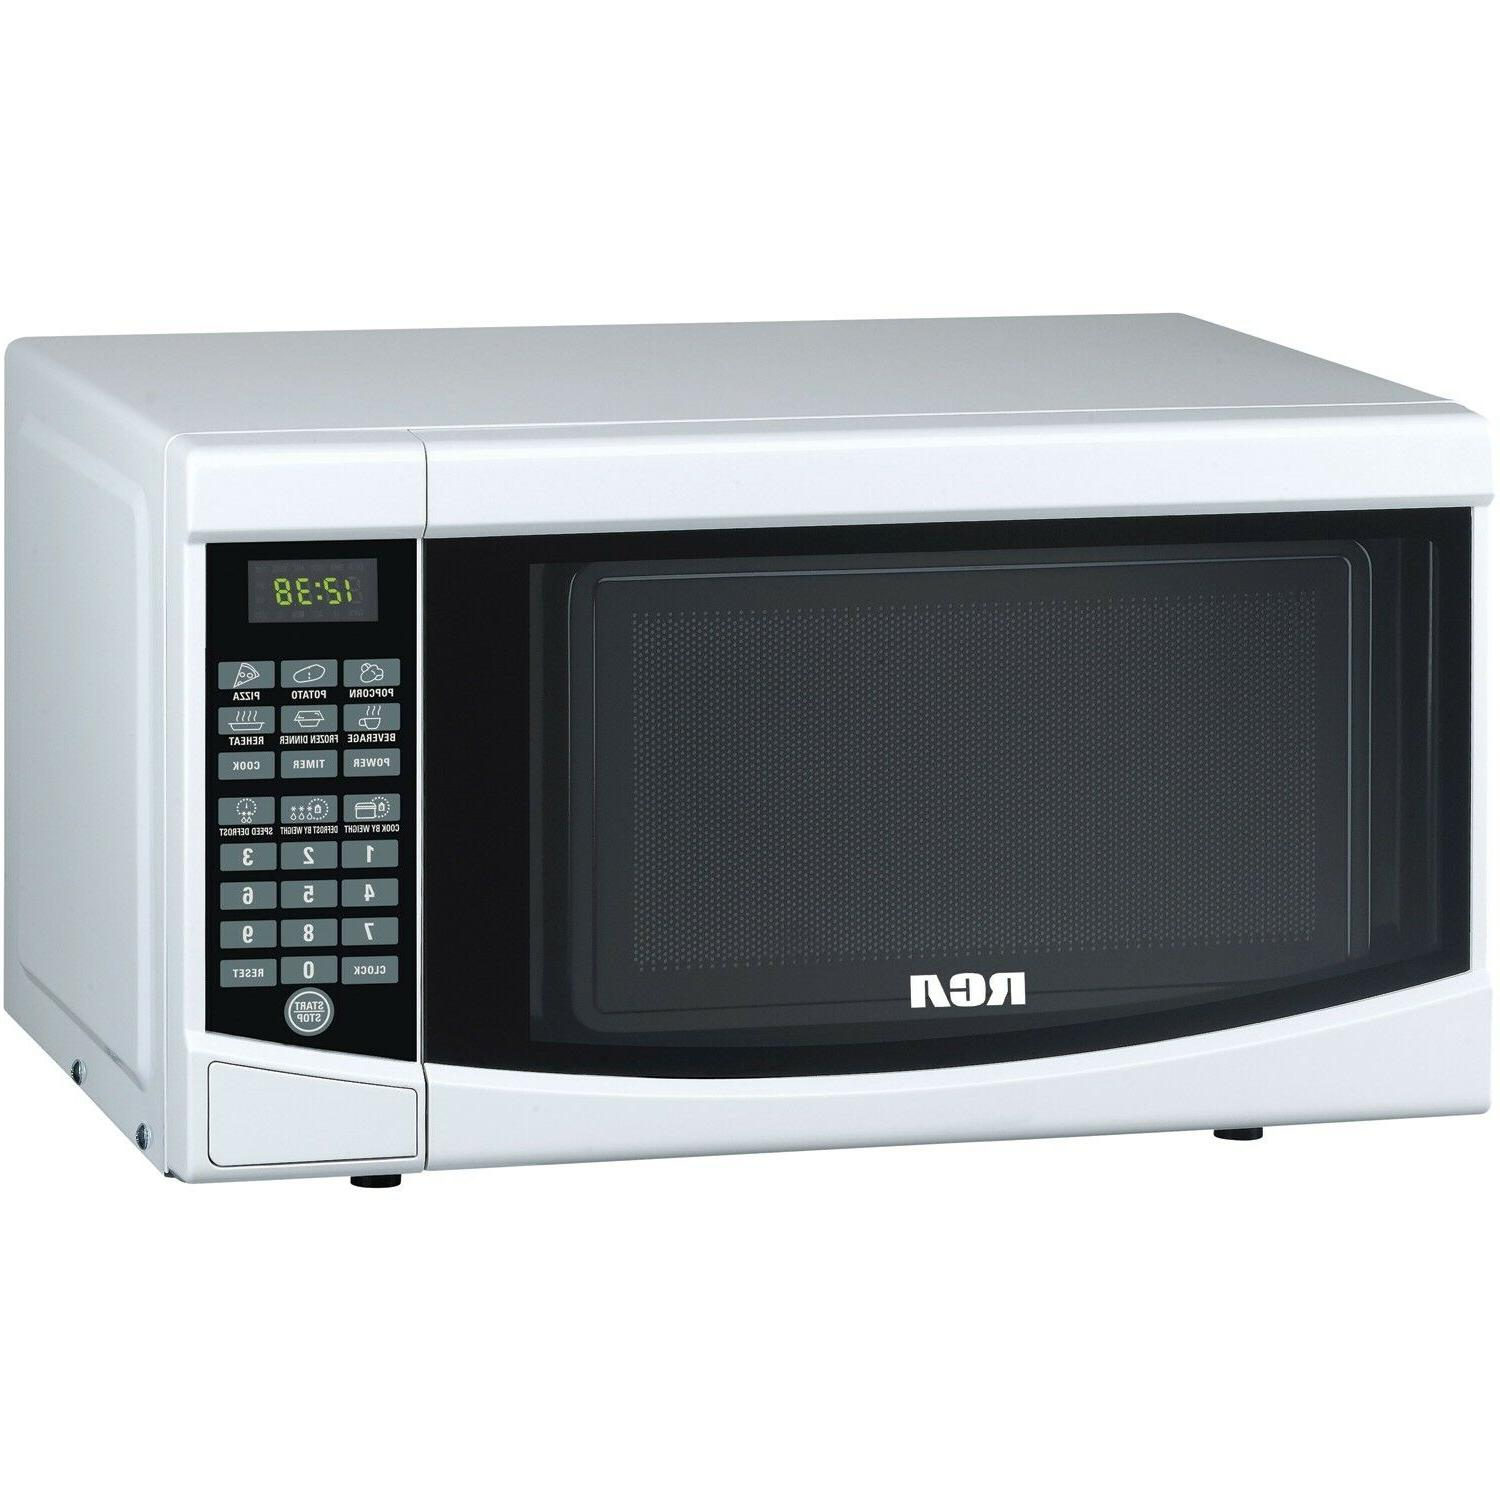 RCA 0.7 Cu. Ft. Microwave Oven- Available in Black